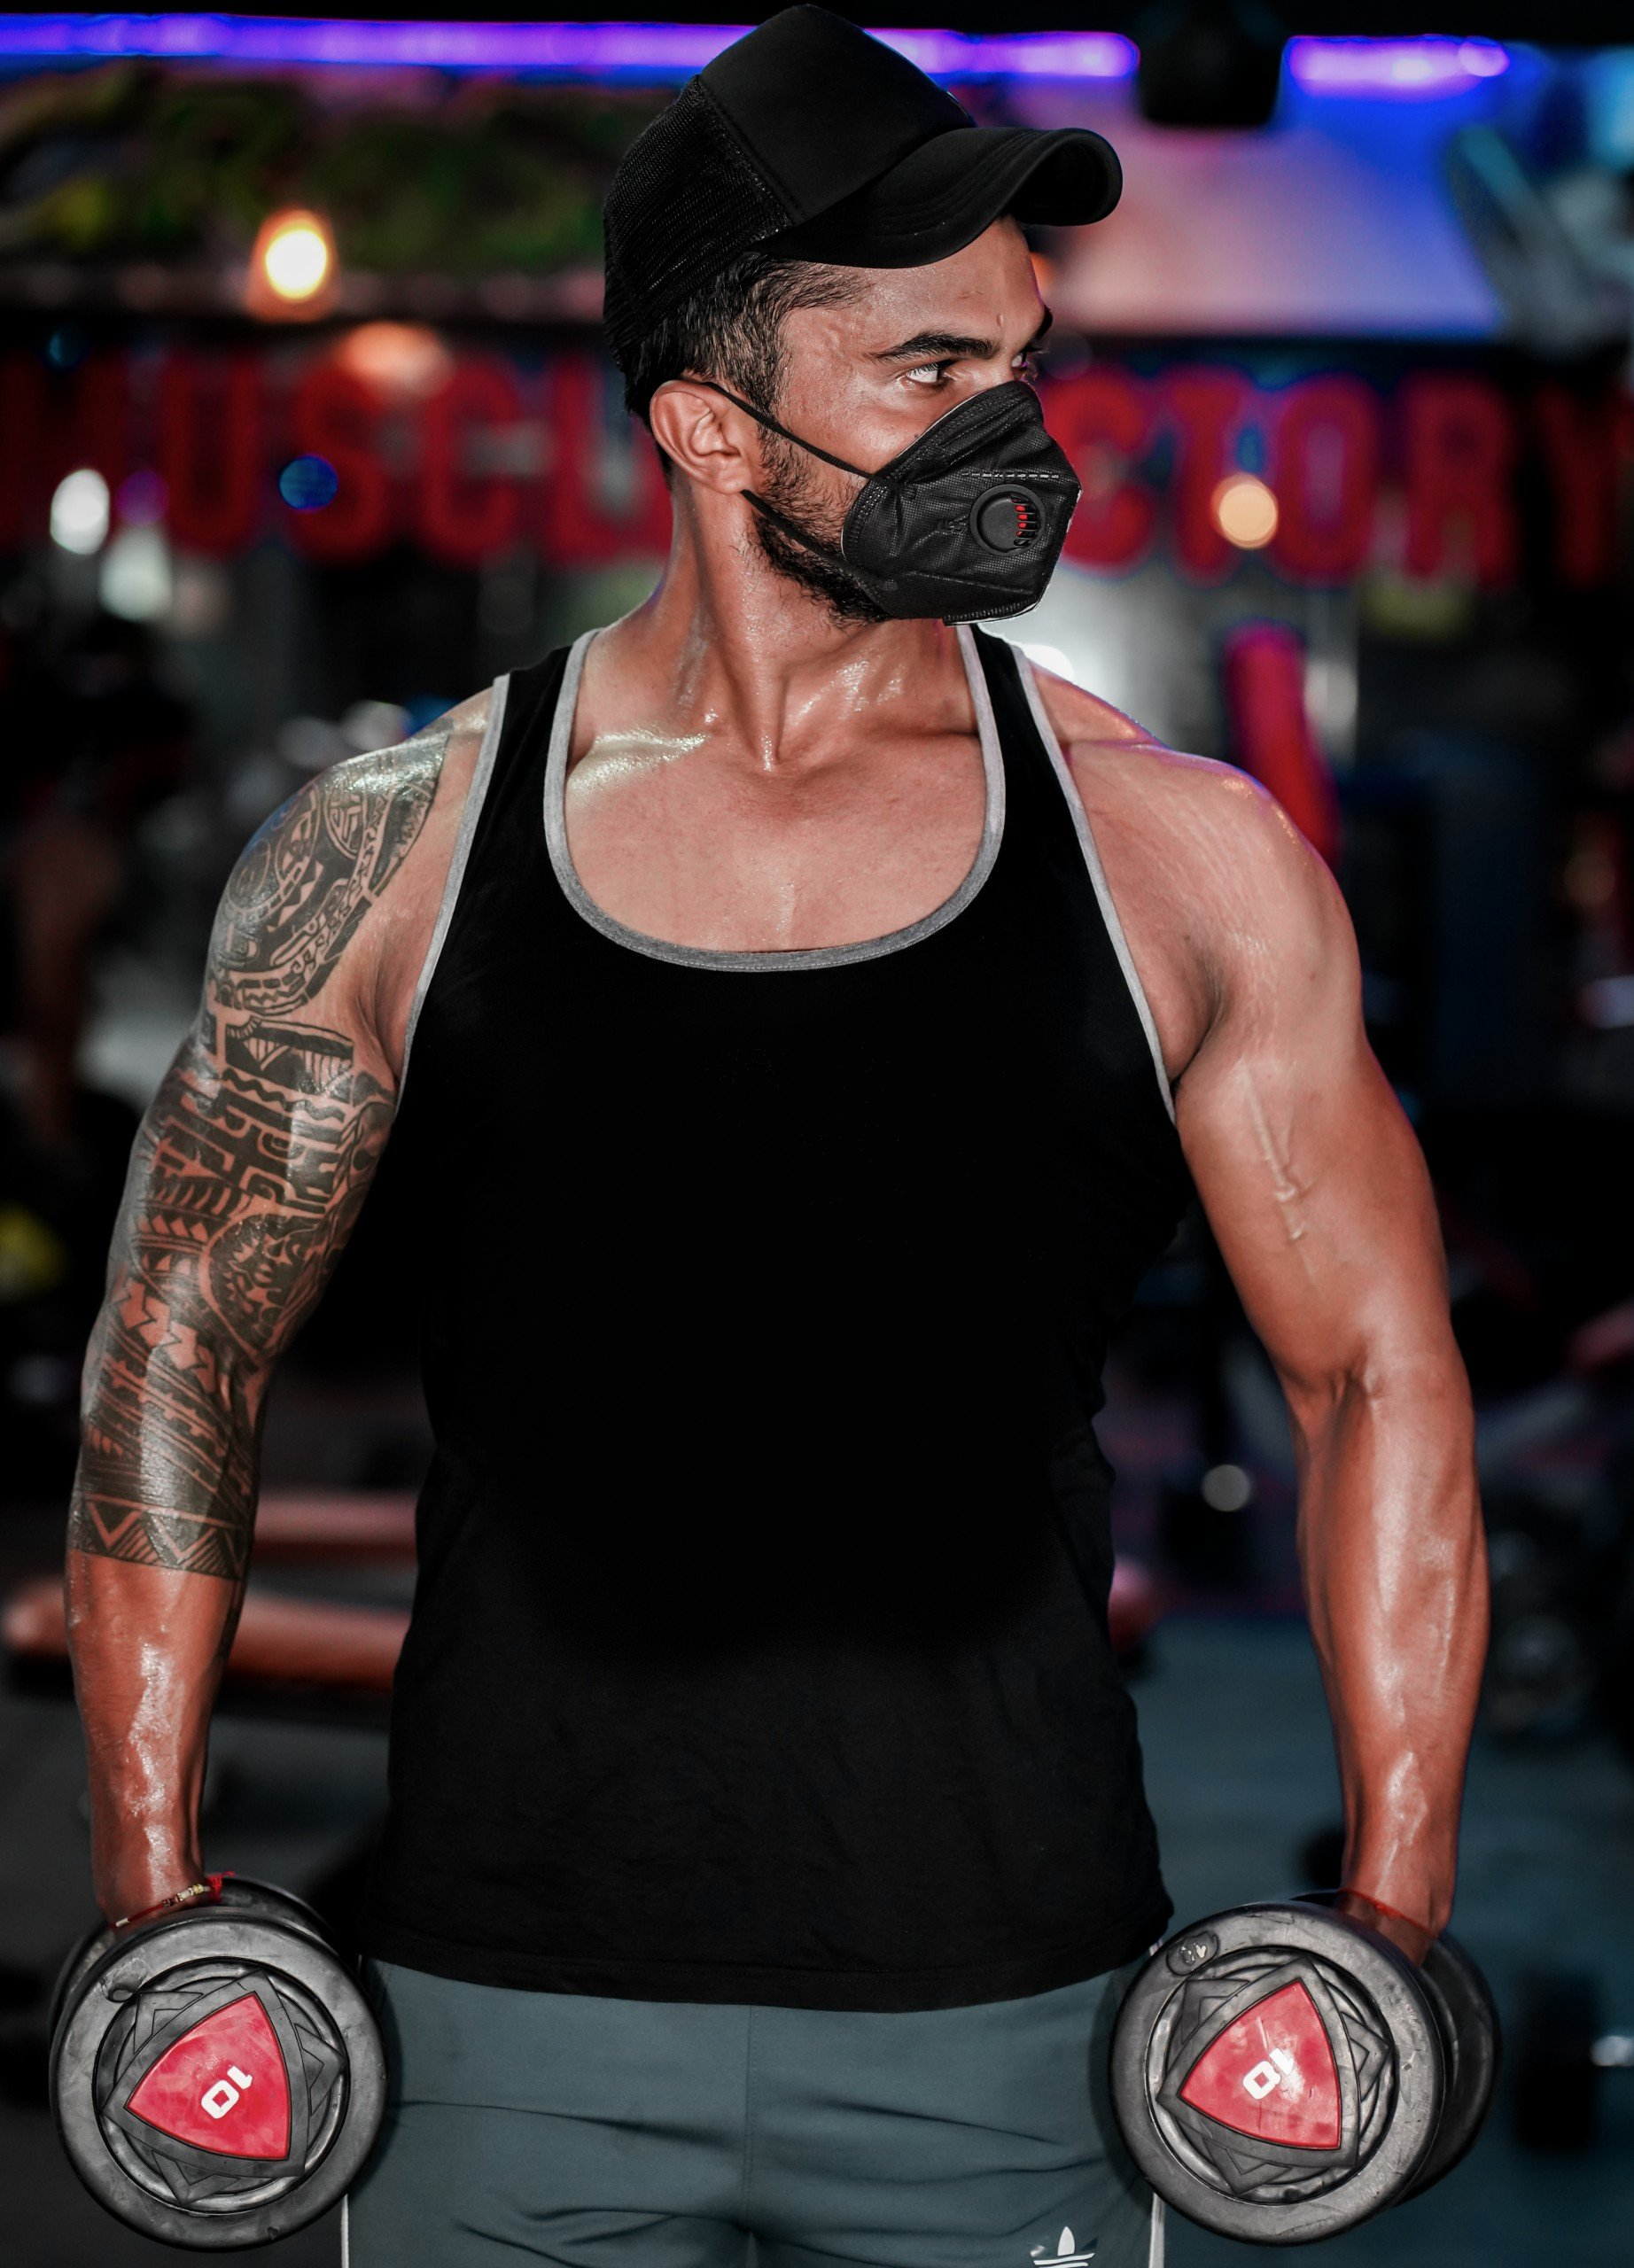 Bodybuilder wearing mask in gym